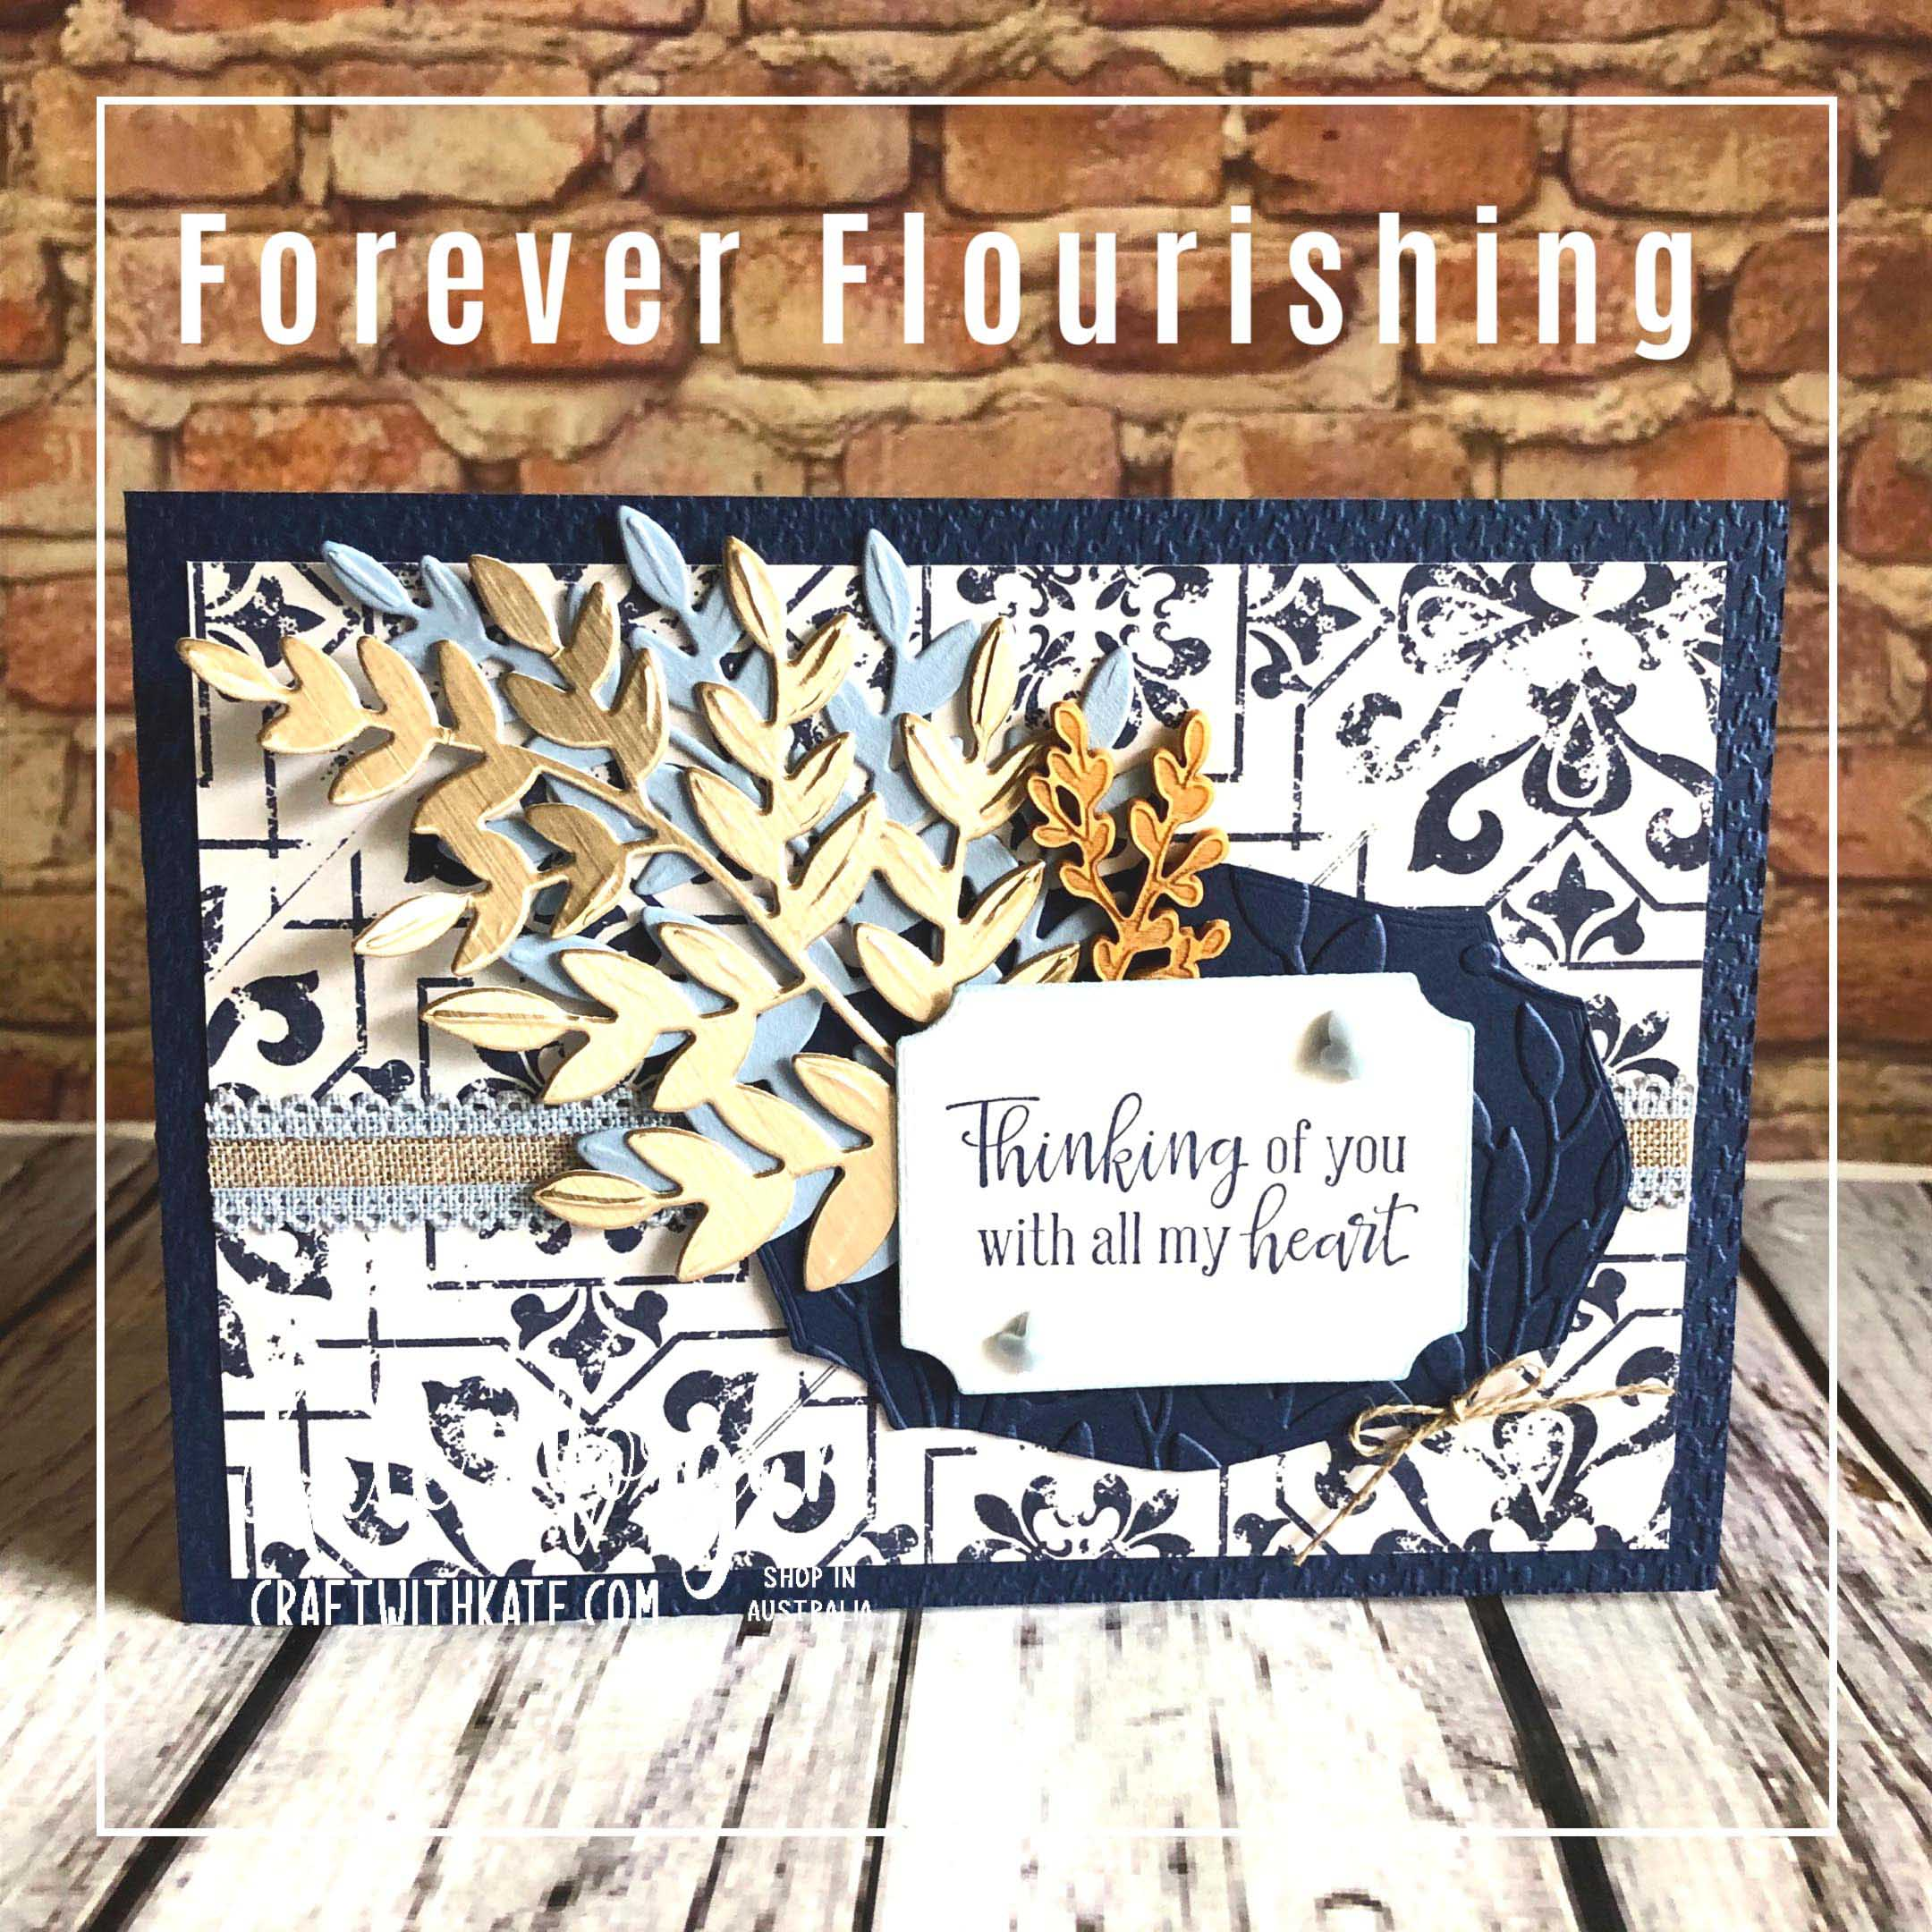 Forever Flourishing & In Good Taste by Kate Morgan Stampin Up Australia 2020